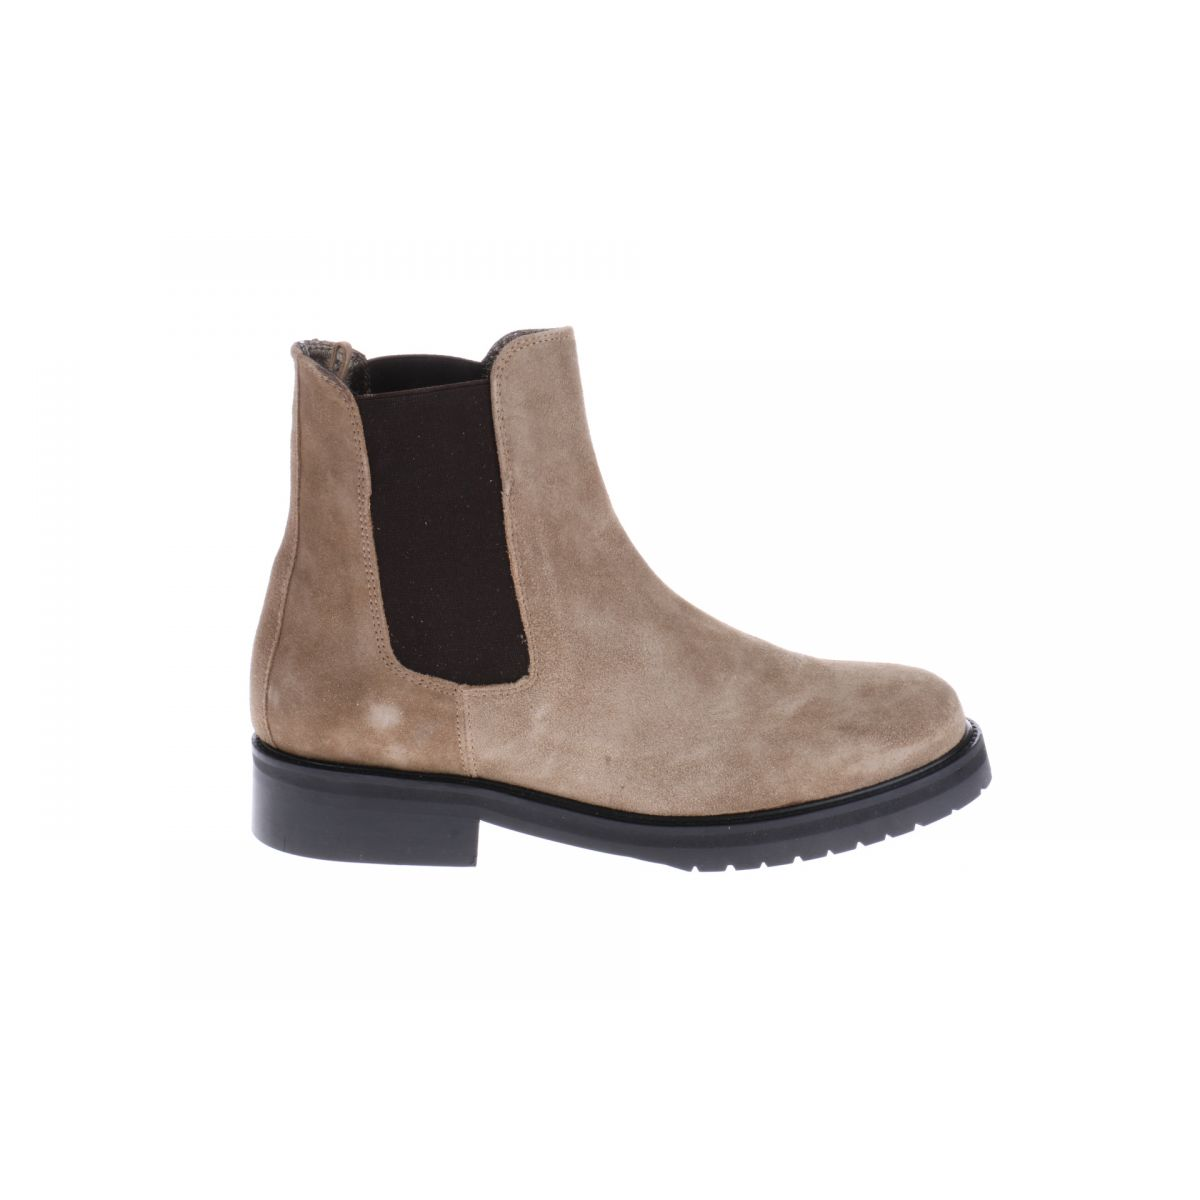 HIP Donna D1590 Chelseaboots Beige